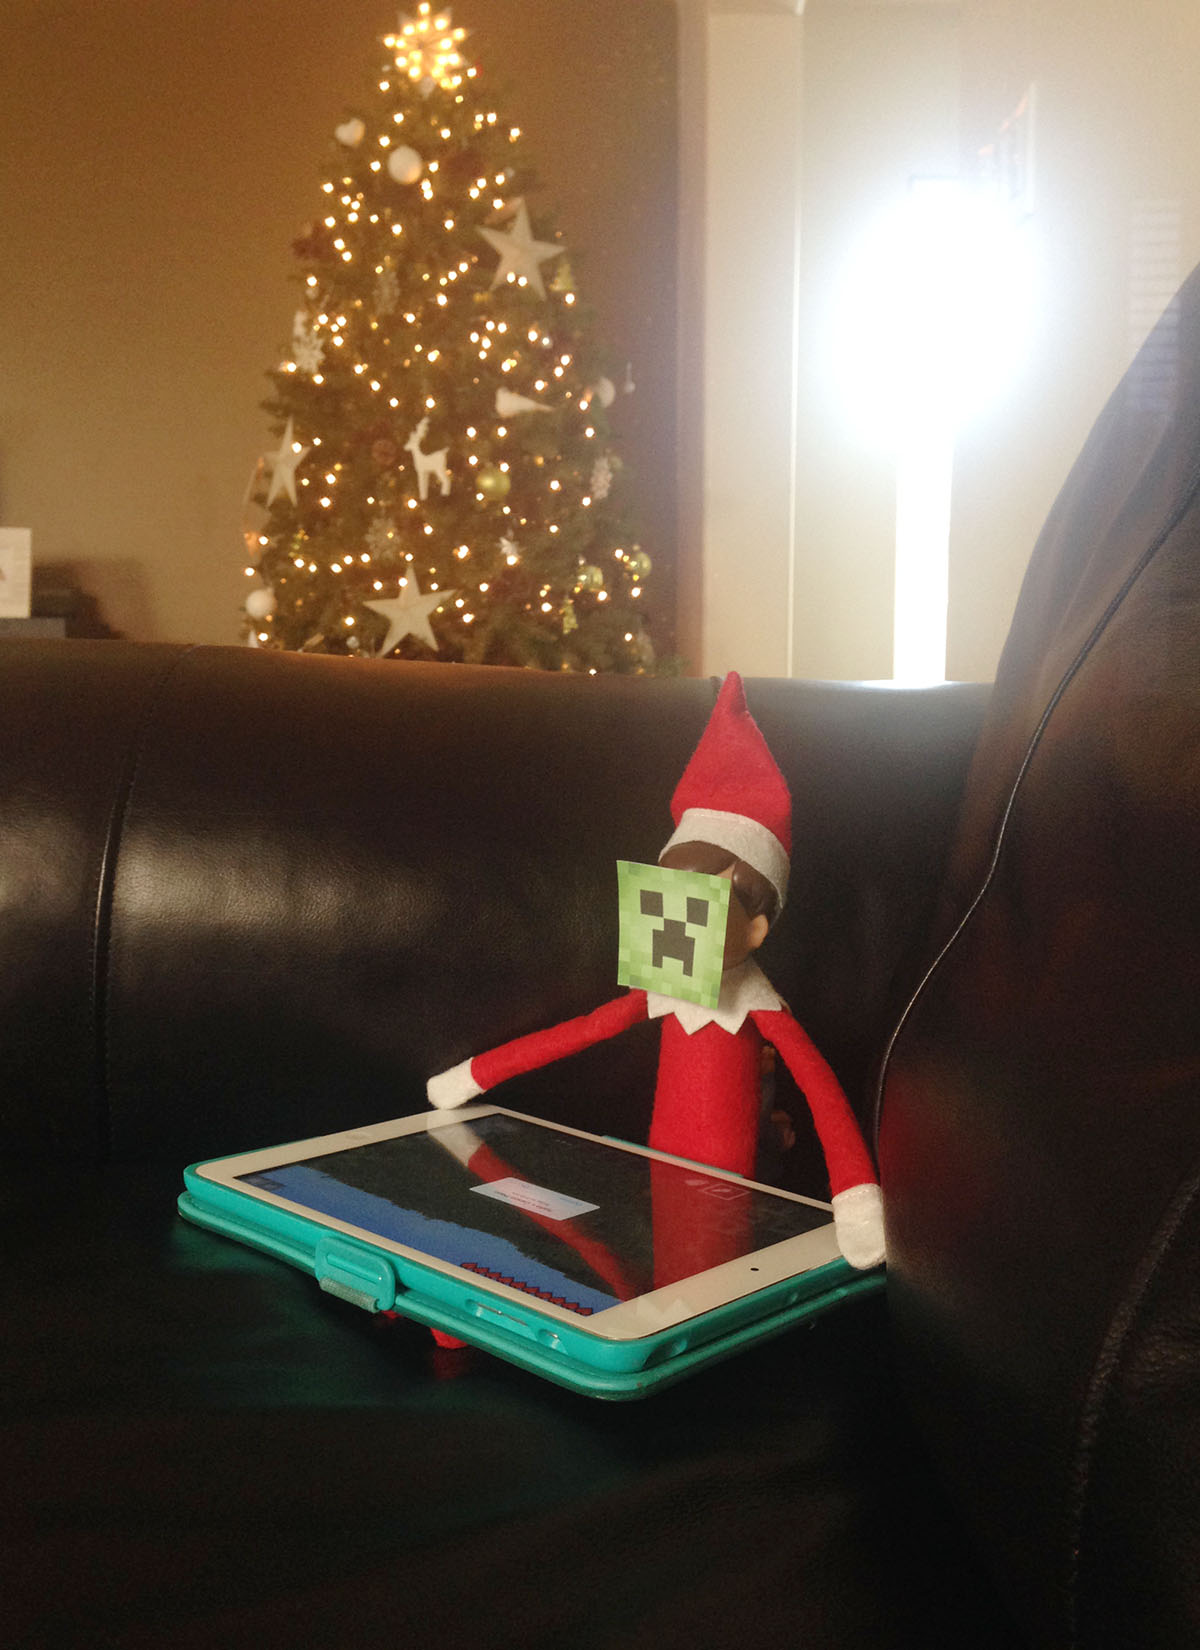 Elf plays a game of Minecraft.